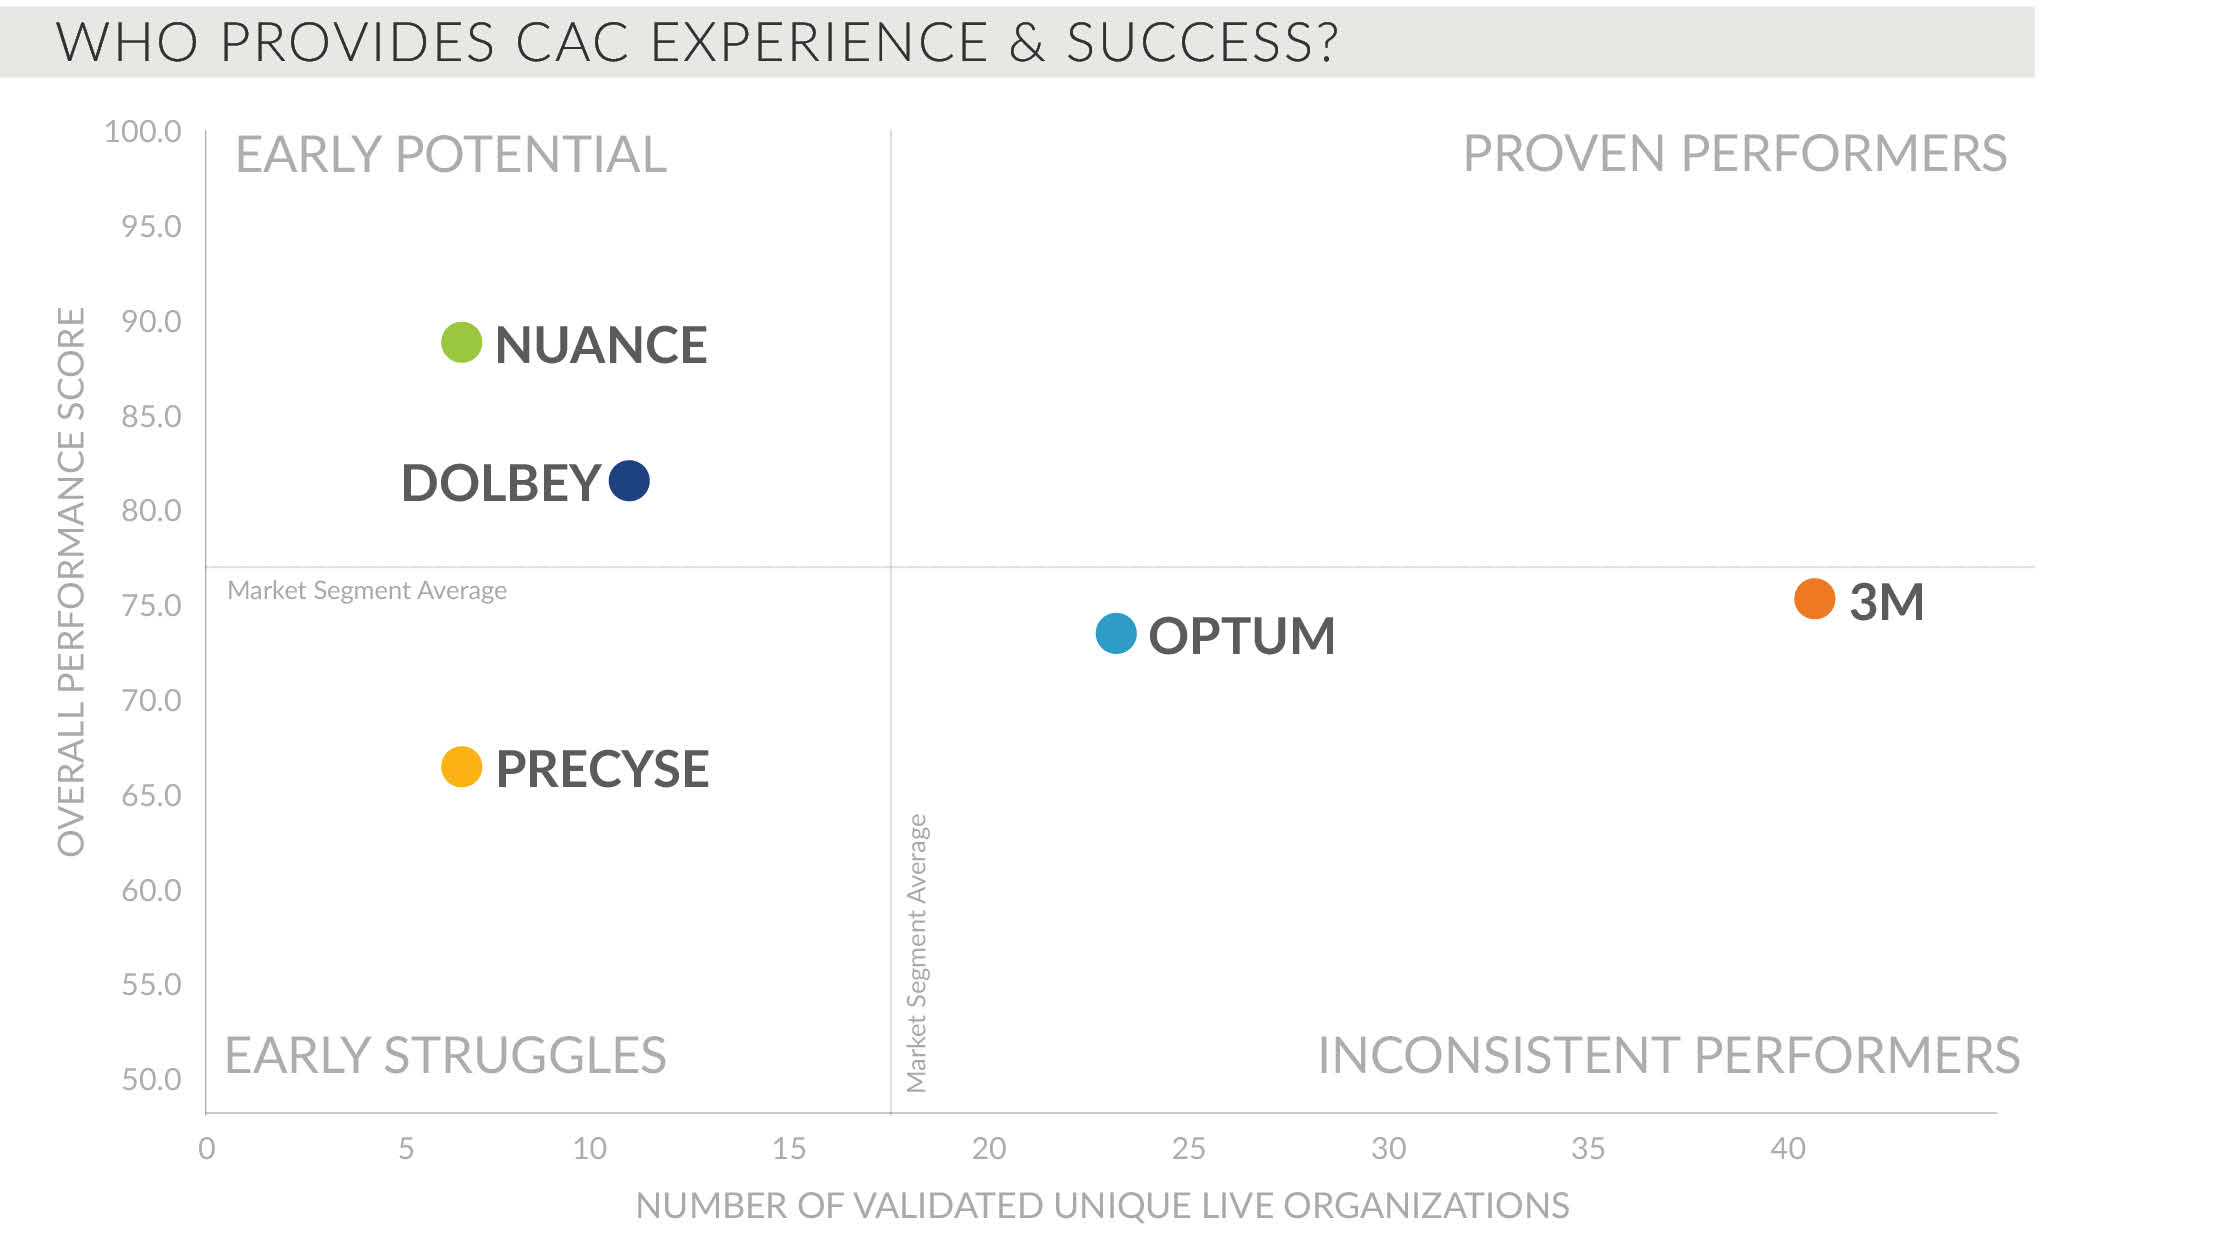 who provides cac experience and success